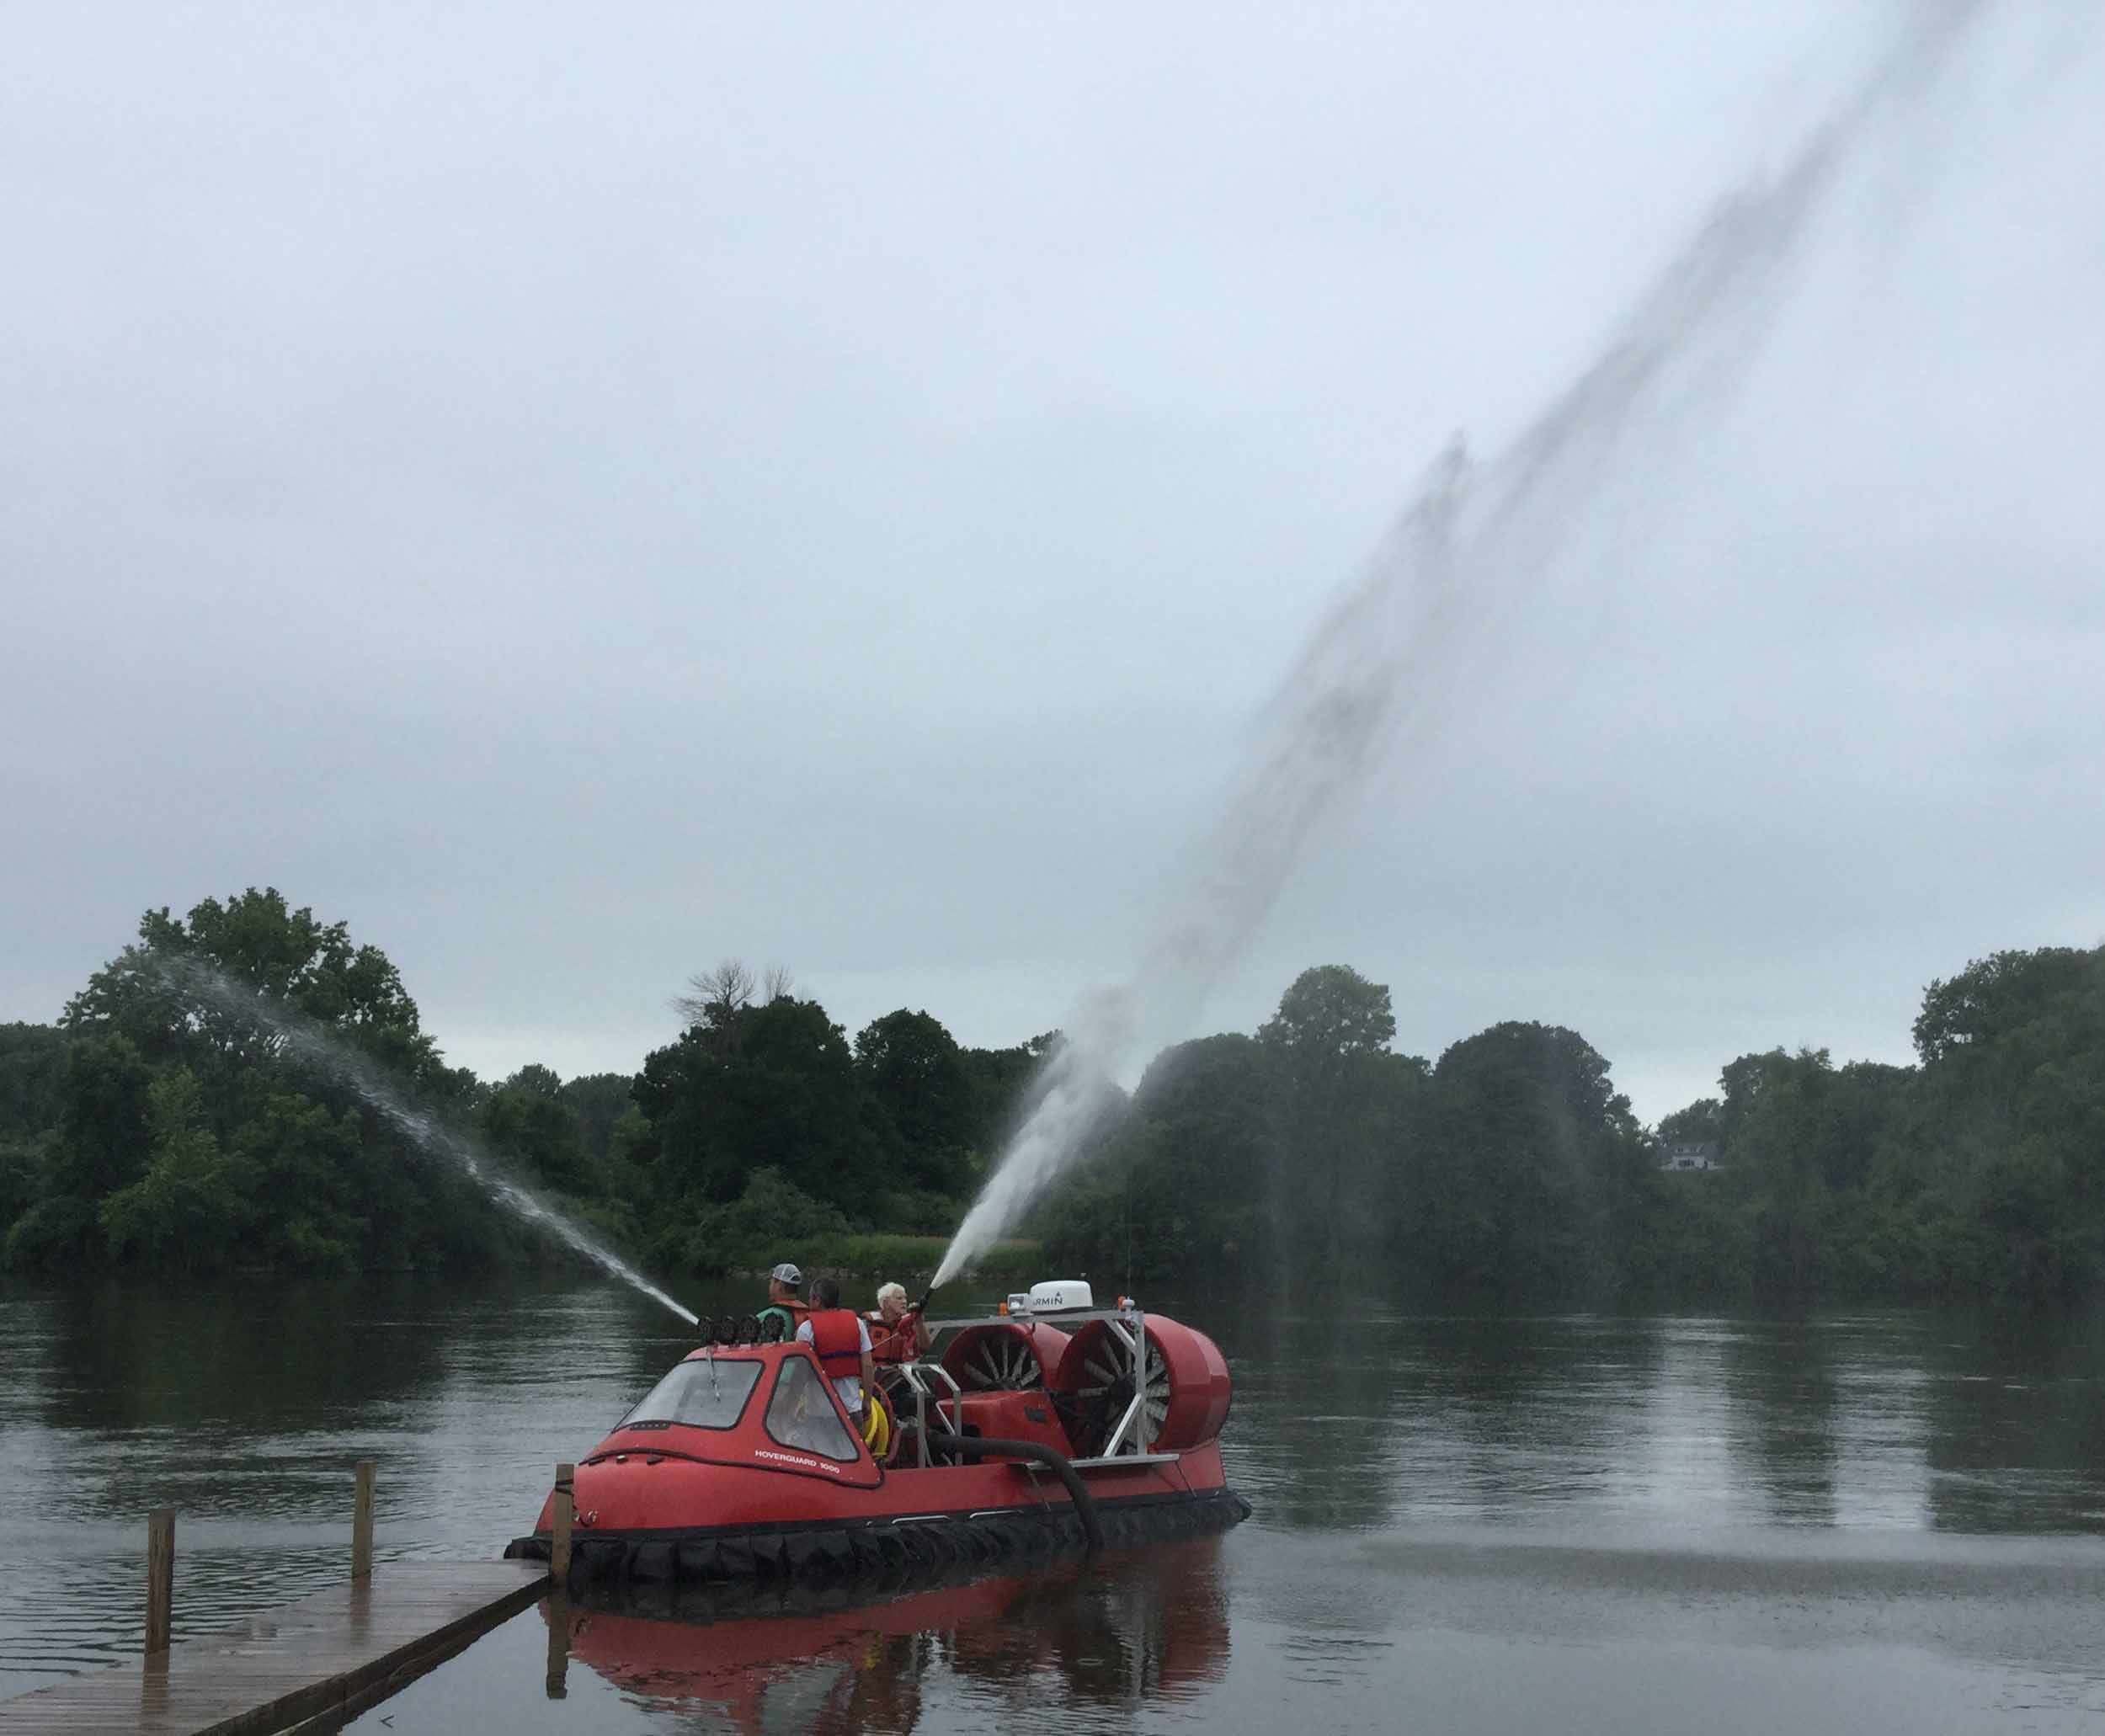 Hovercraft Fire Pump Monitor and Hose Testing